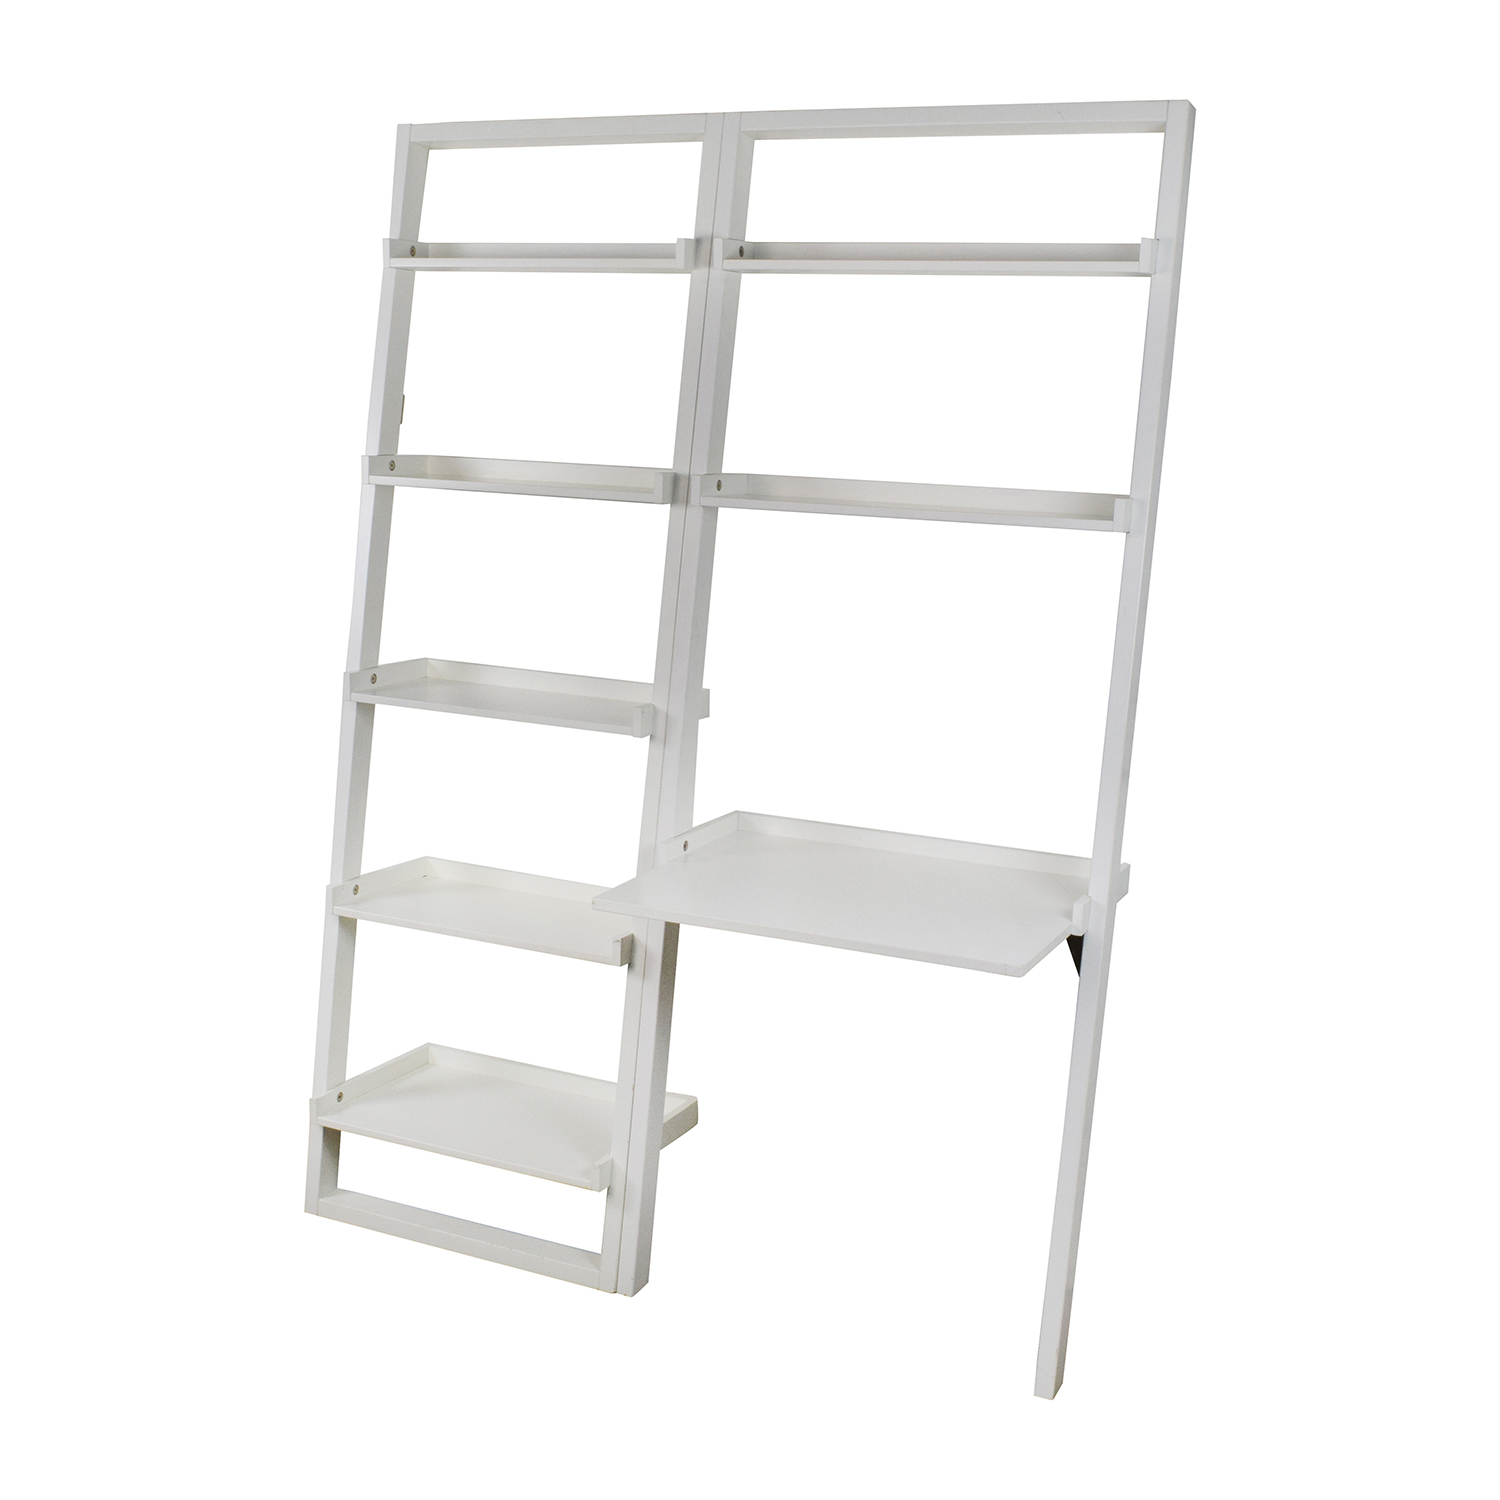 Crate And Barrel Leaning Bookcase And Desk / Storage